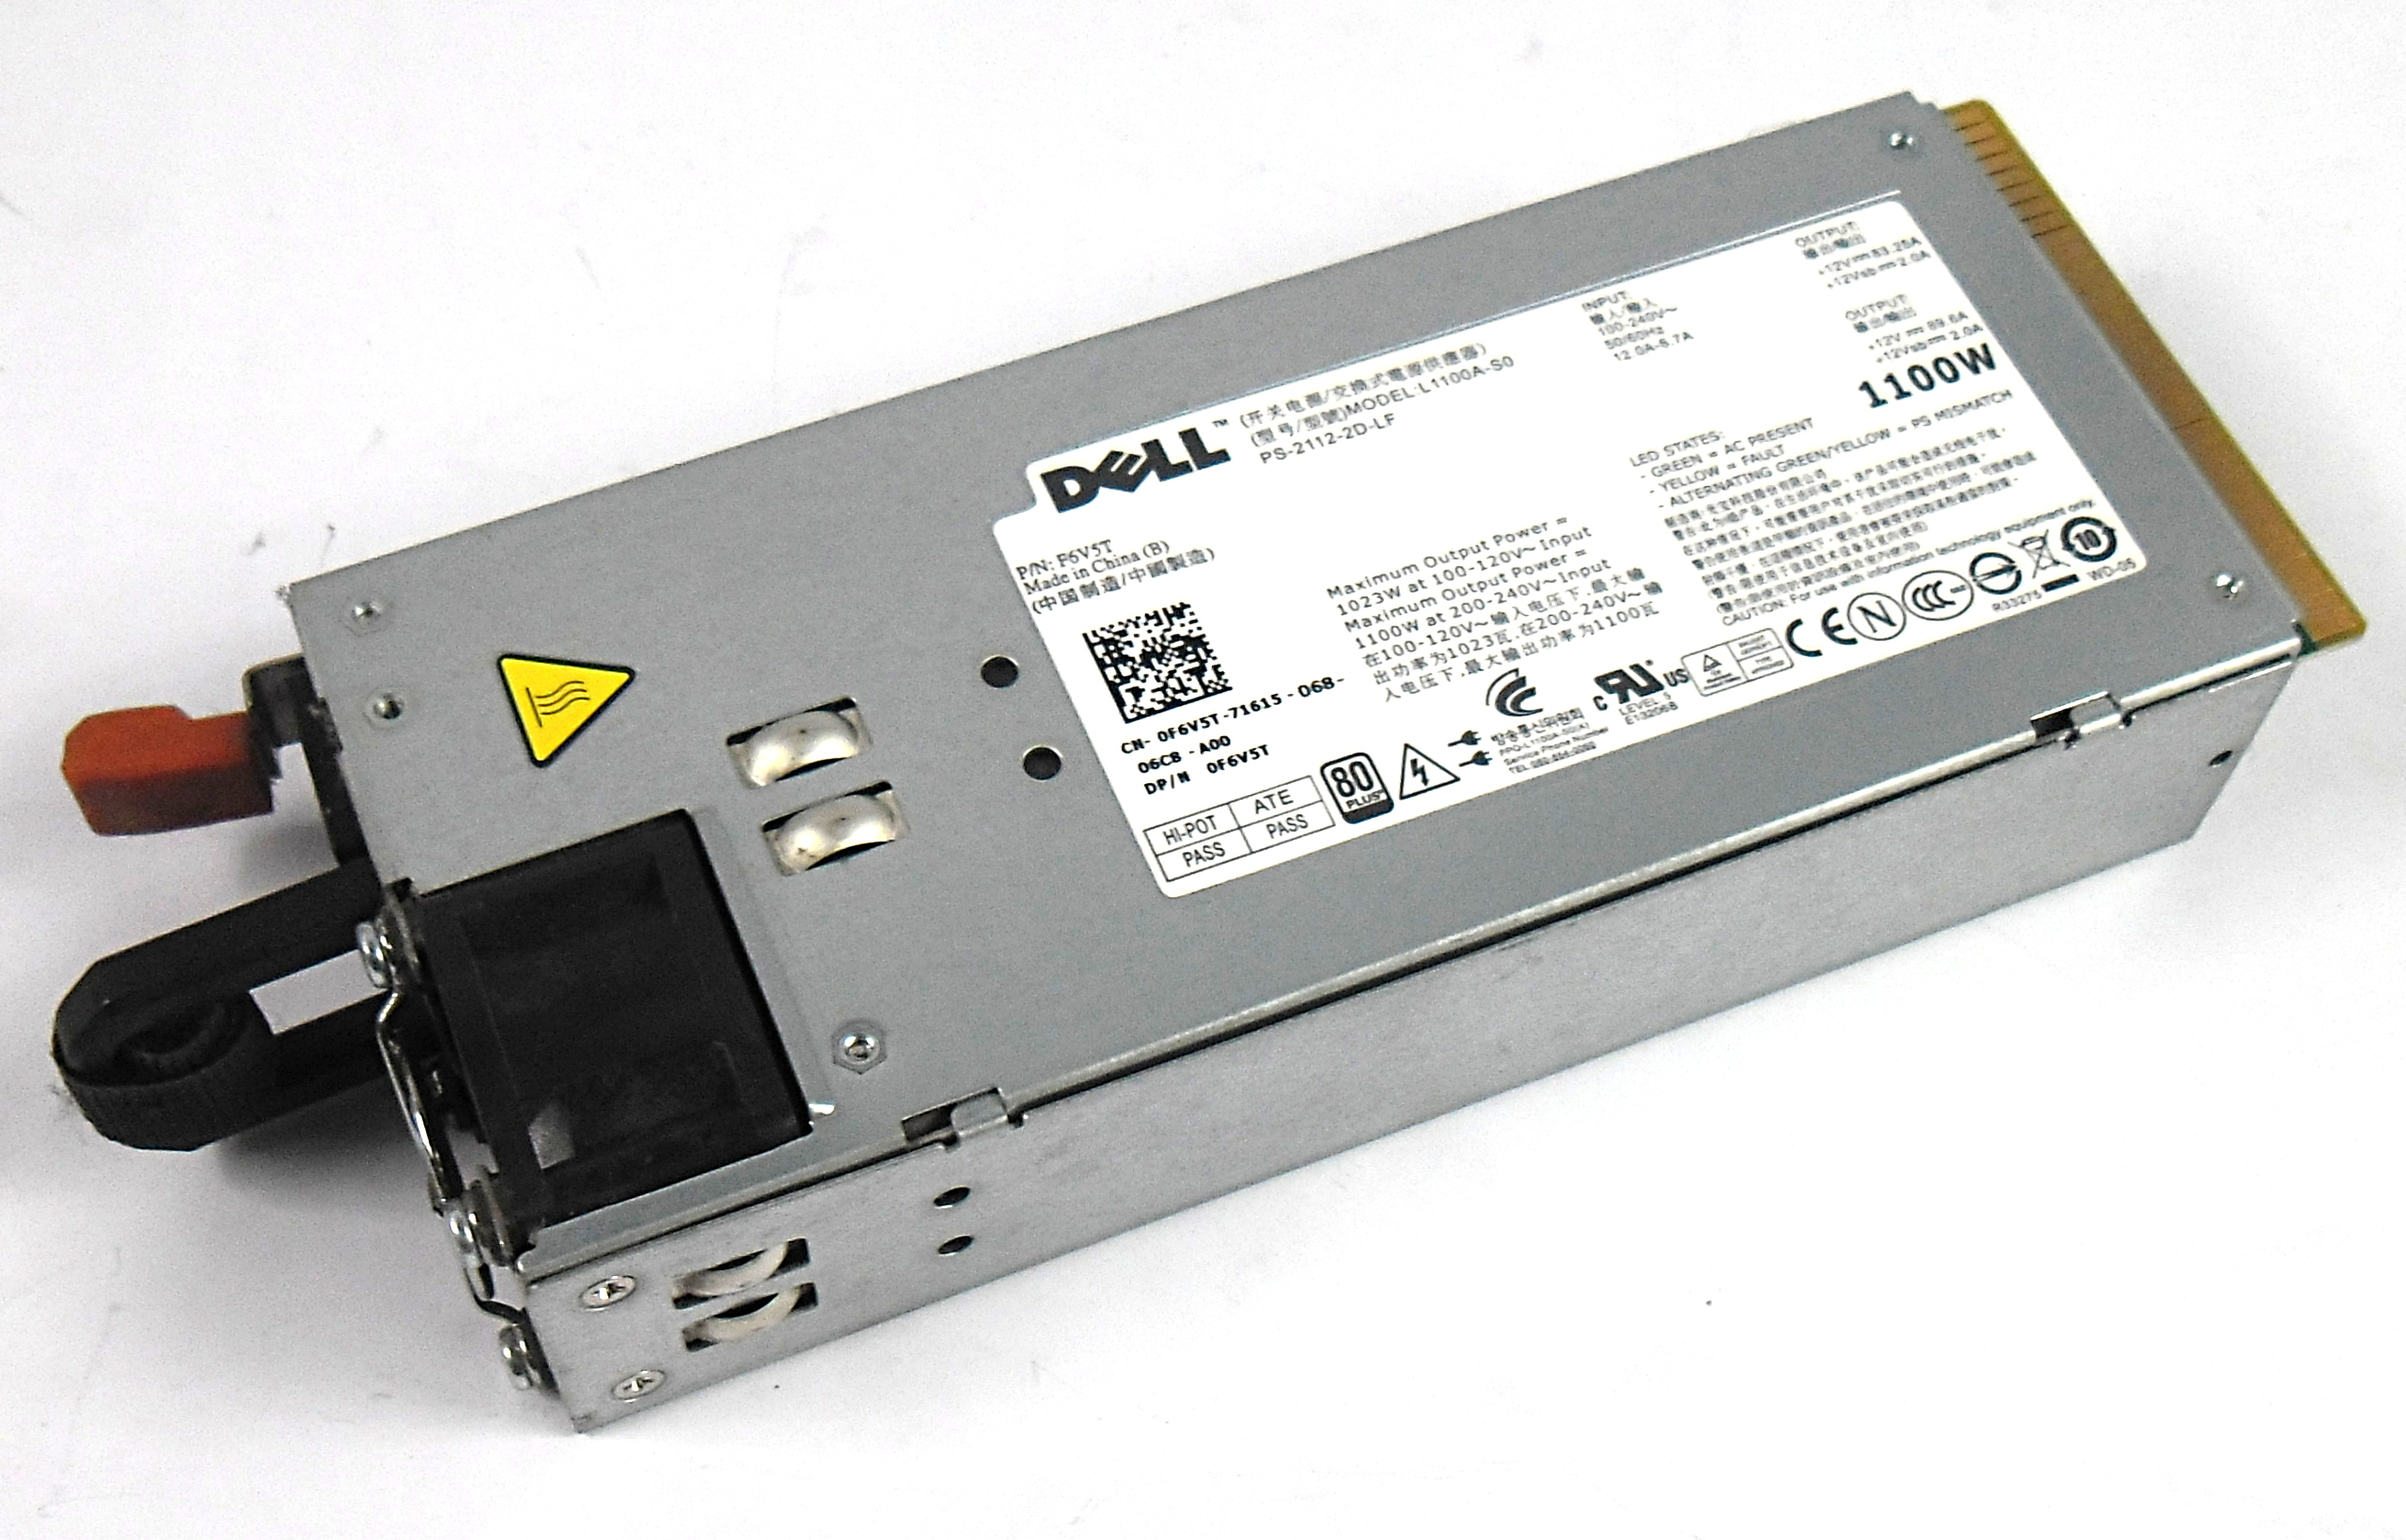 Dell PowerEdge R510 R810 R910 T710 Server 1100W Power Supply PSU 3MJJP